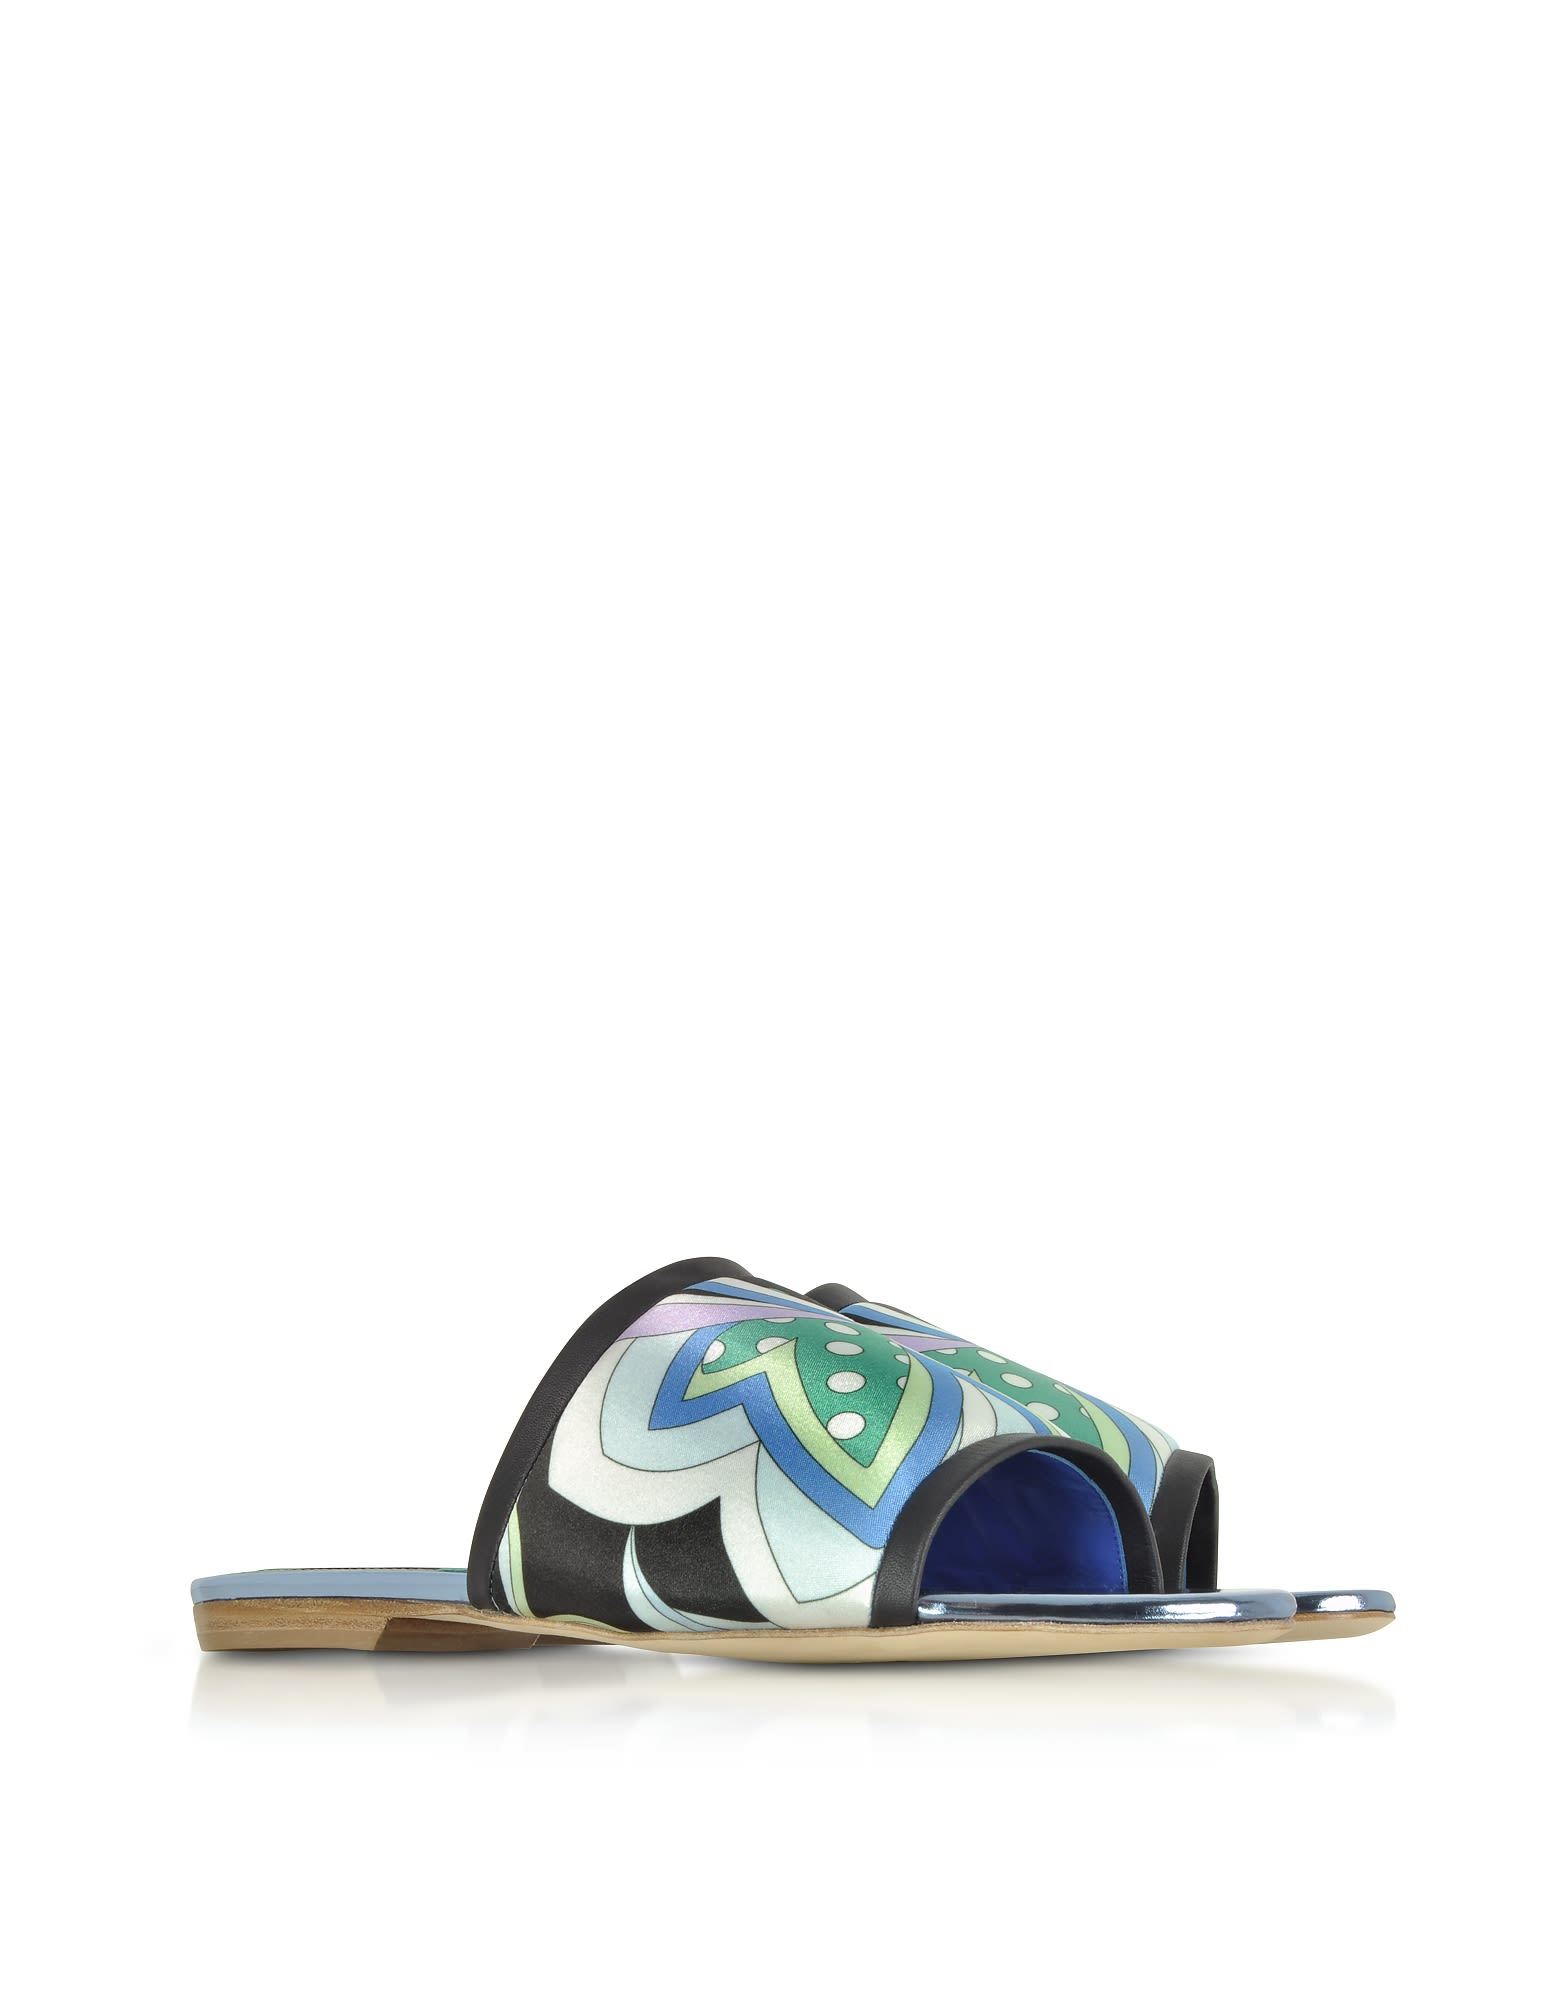 Emilio Pucci Leather Slide Sandals discount popular free shipping 100% guaranteed pre order online itH3IXH